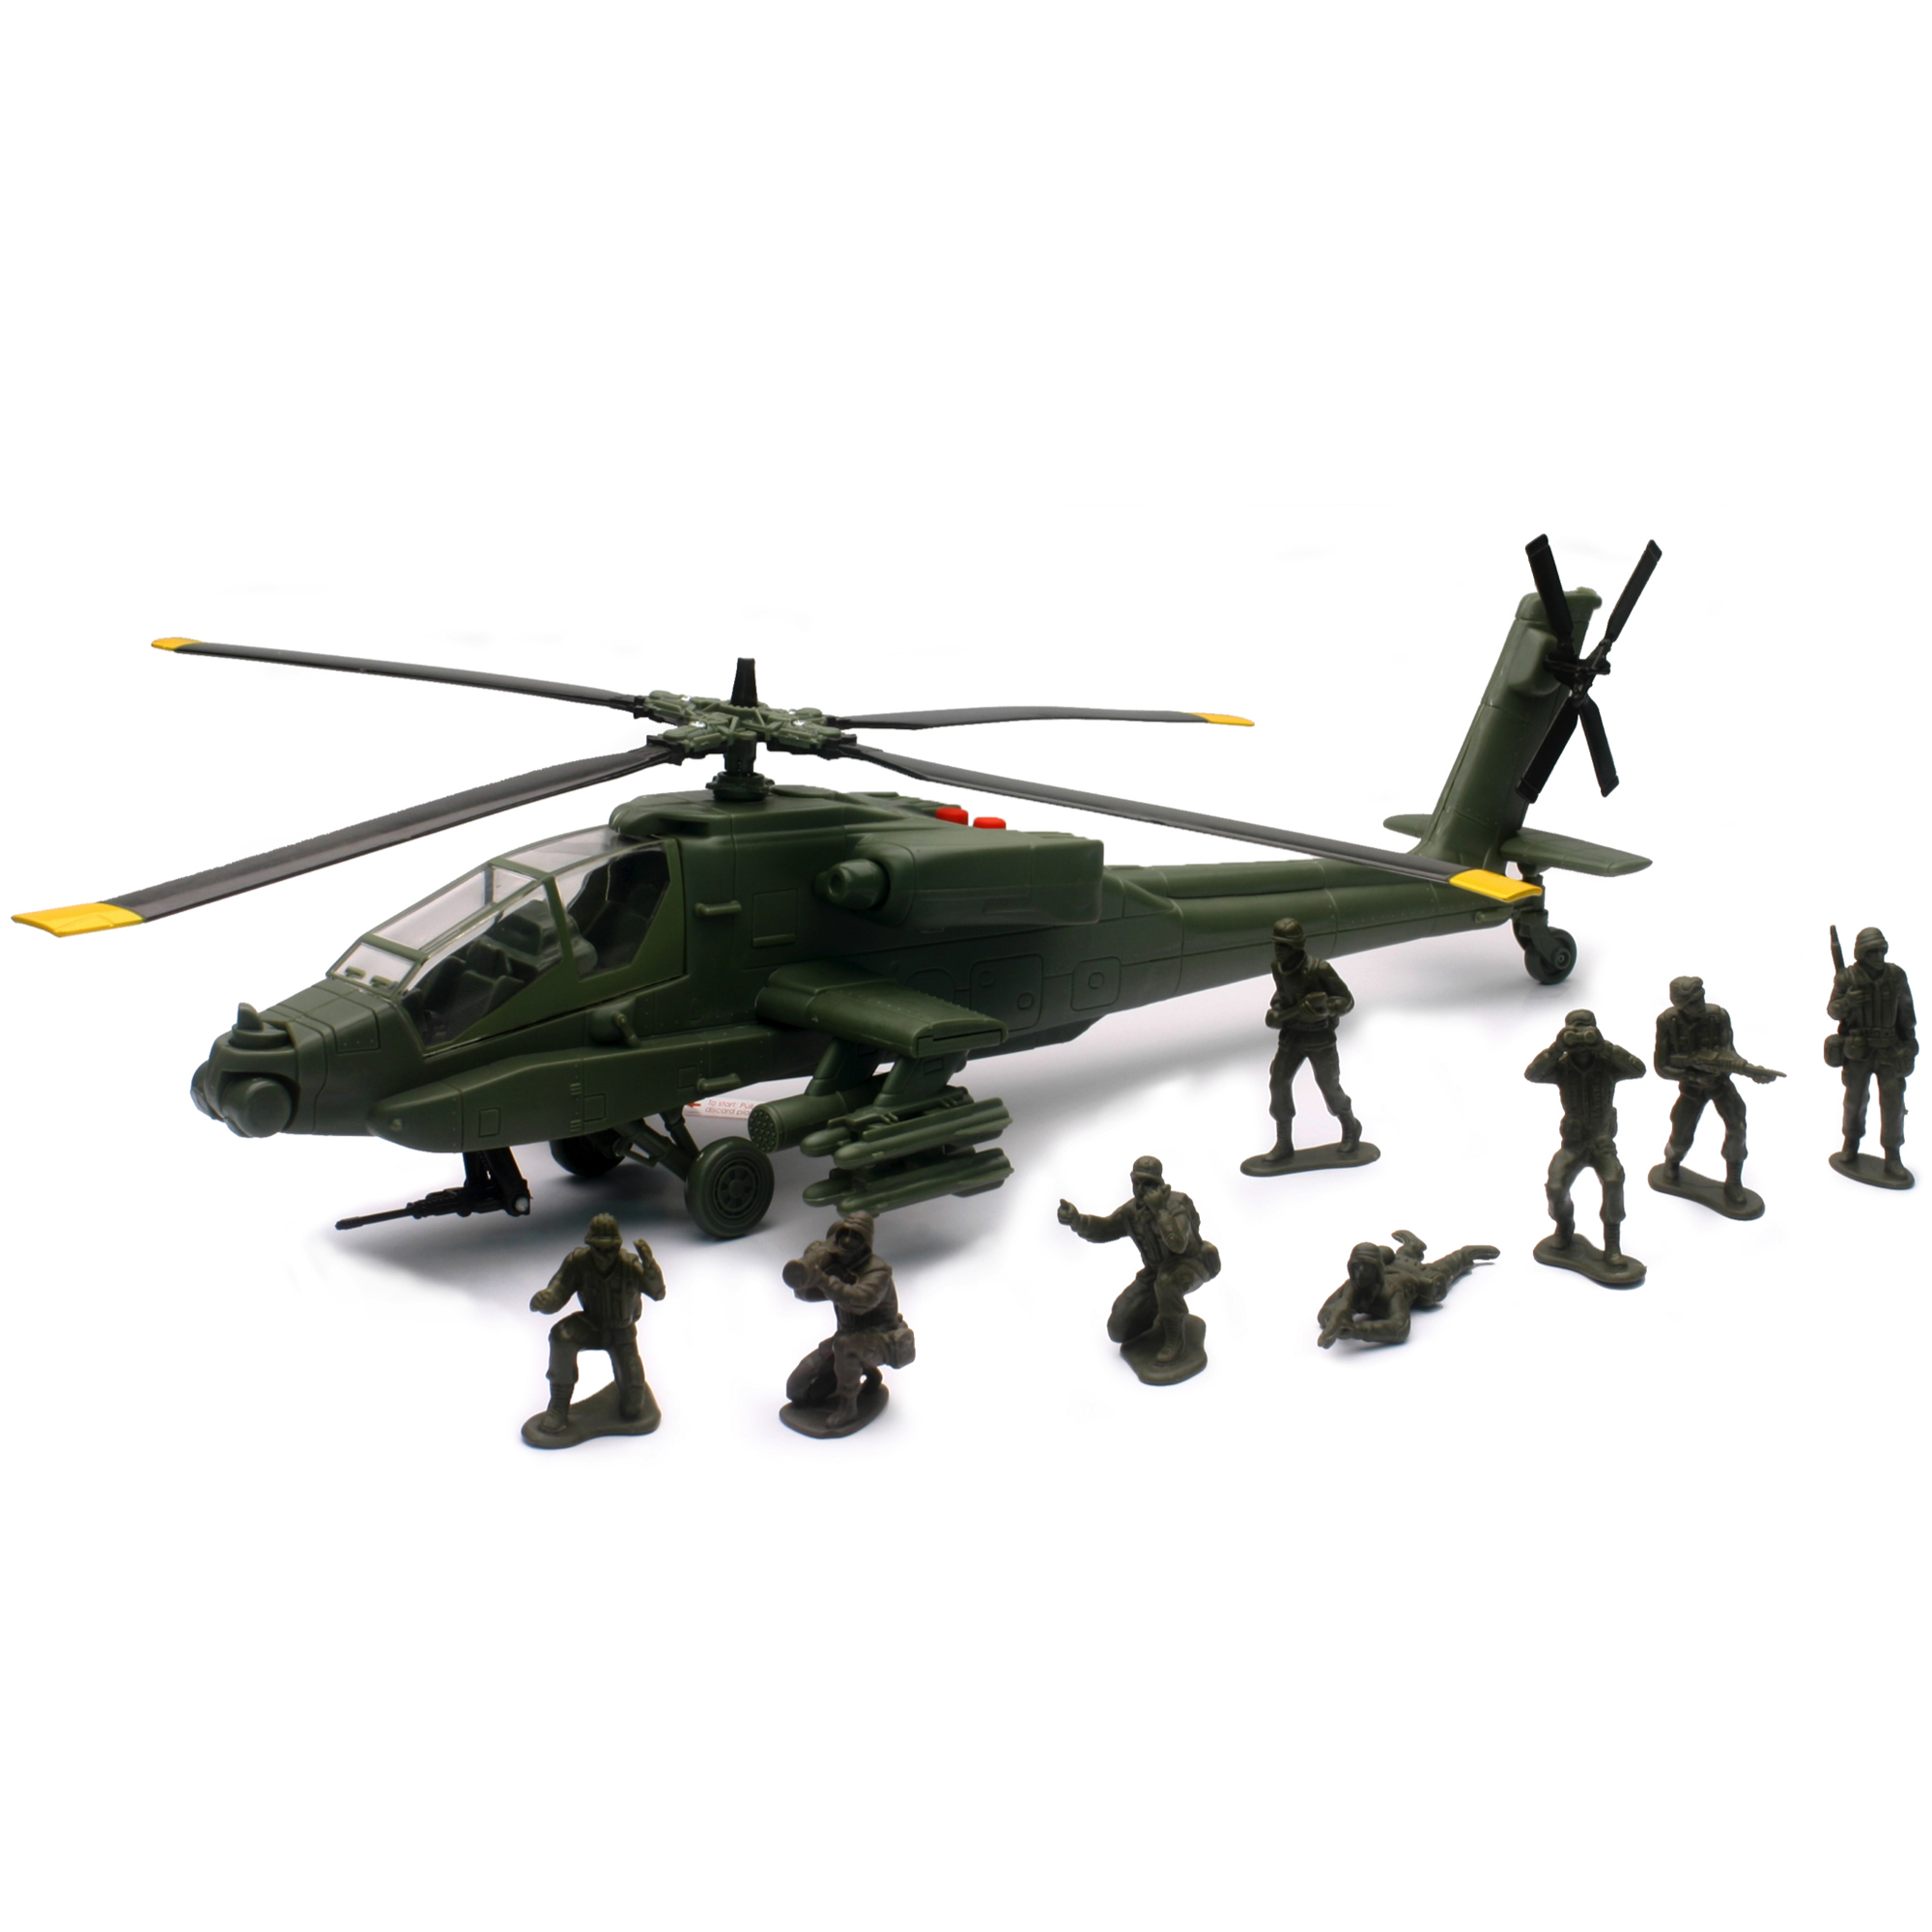 New-Ray Military Mission AH-64 Apache Toy Helicopter by New-Ray Toys Company Limited